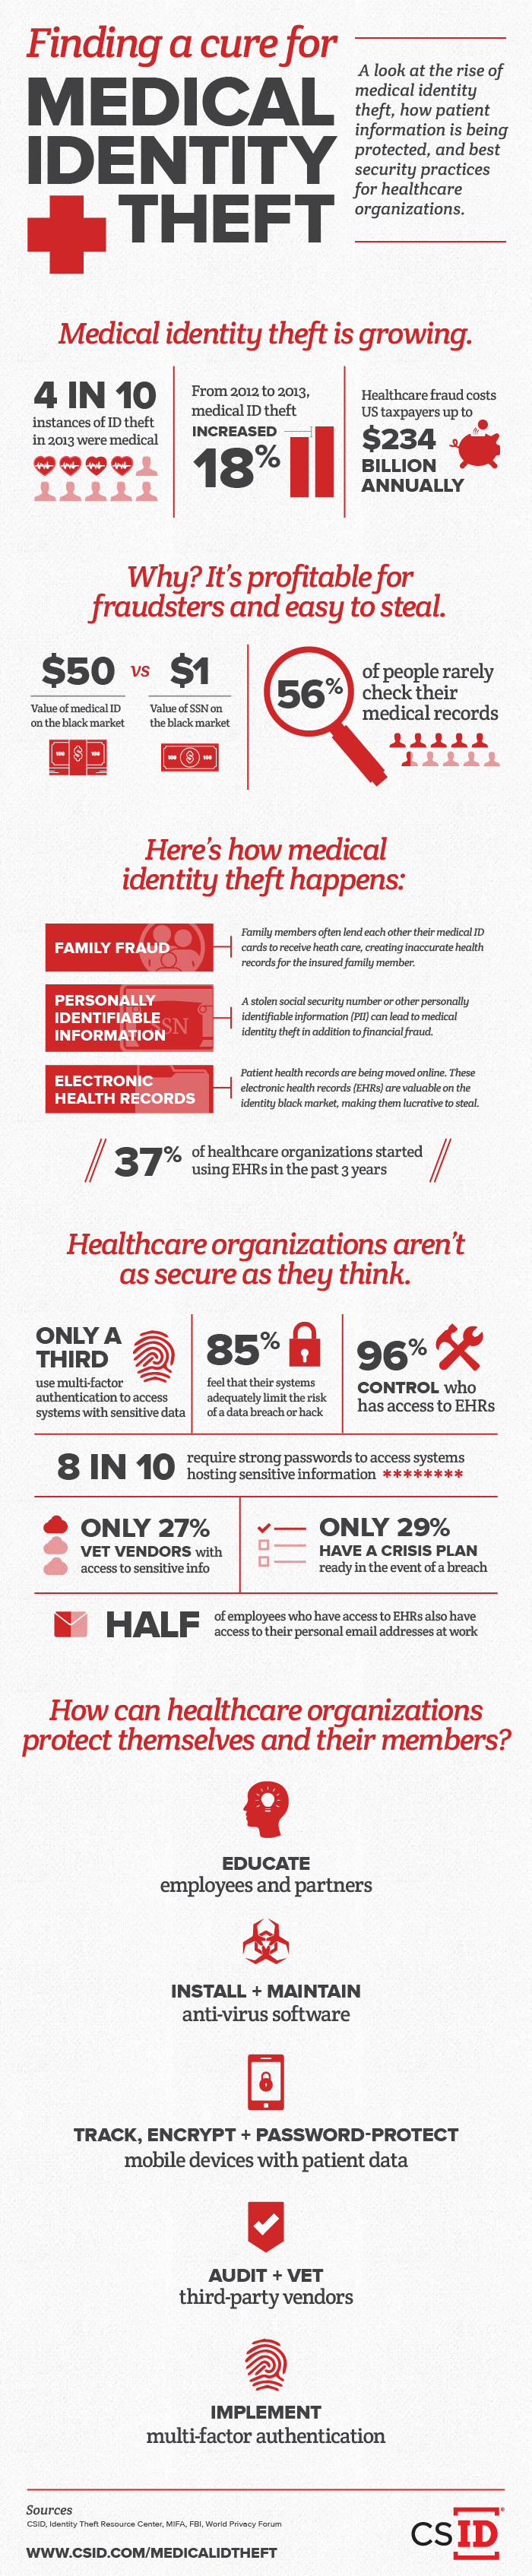 CSID_Infographic_MedicalIDTheft.png